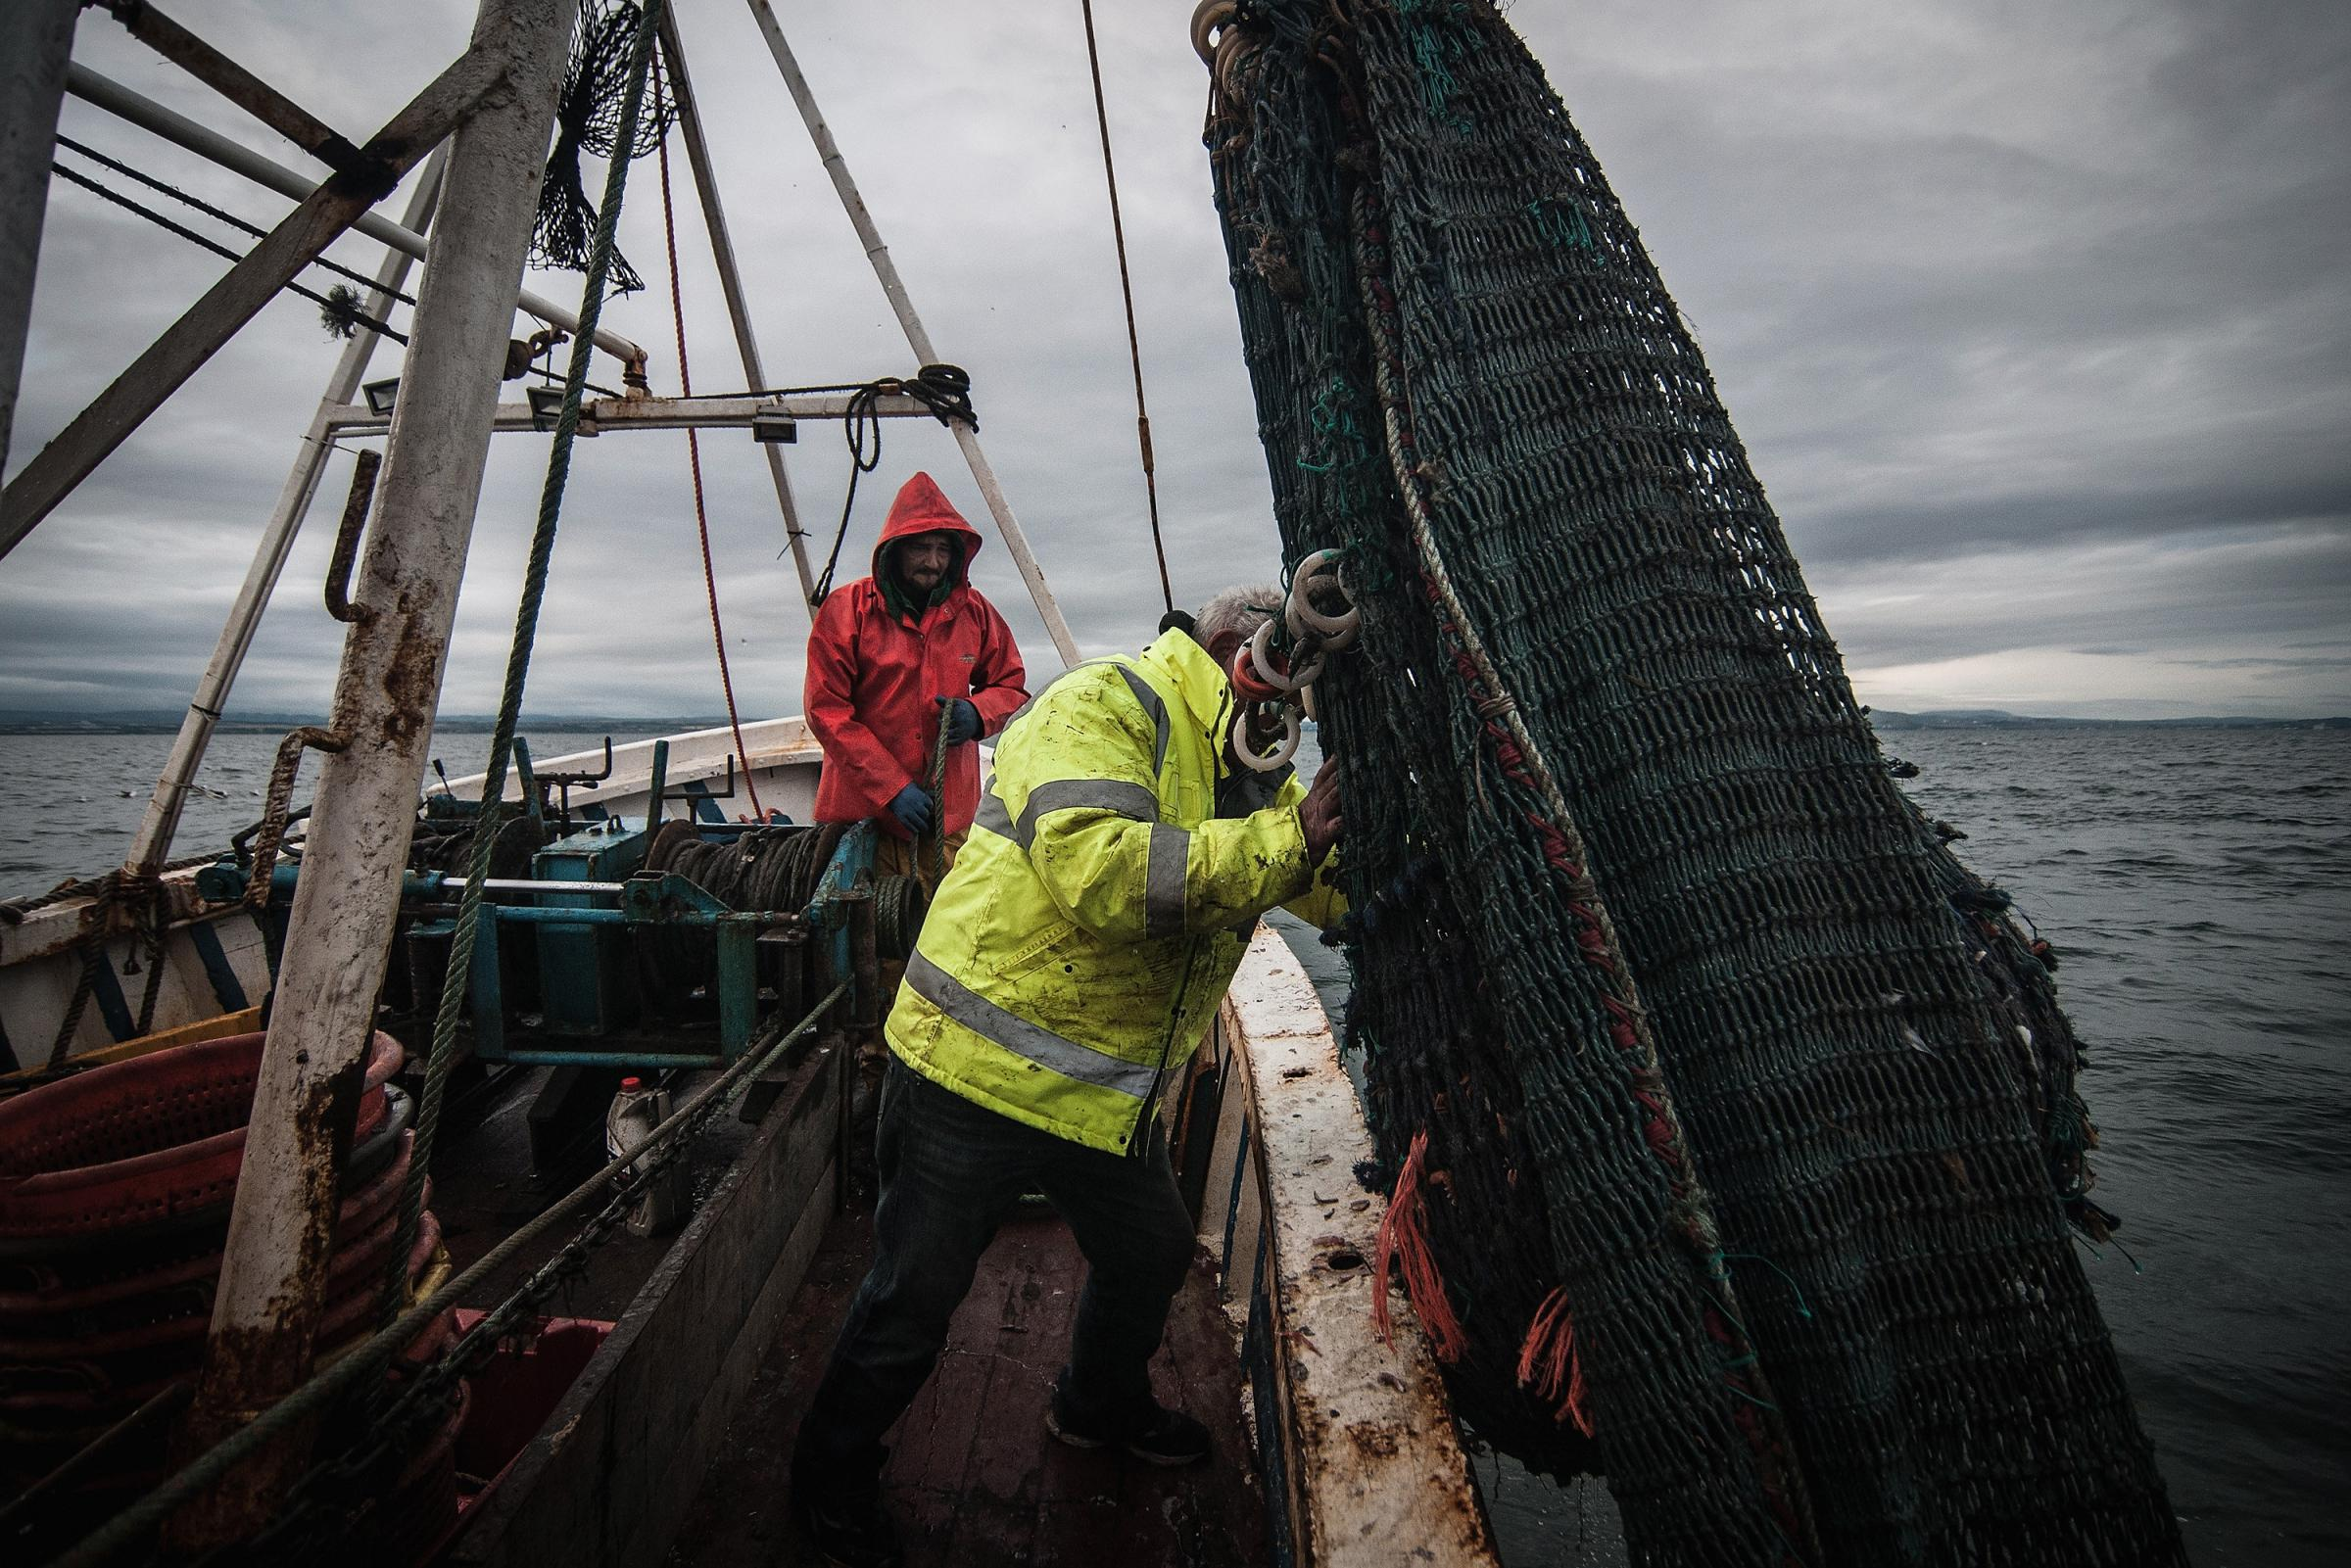 Fisheries management is not a reserved matter but is under threat due to the Brexit 'power grab'